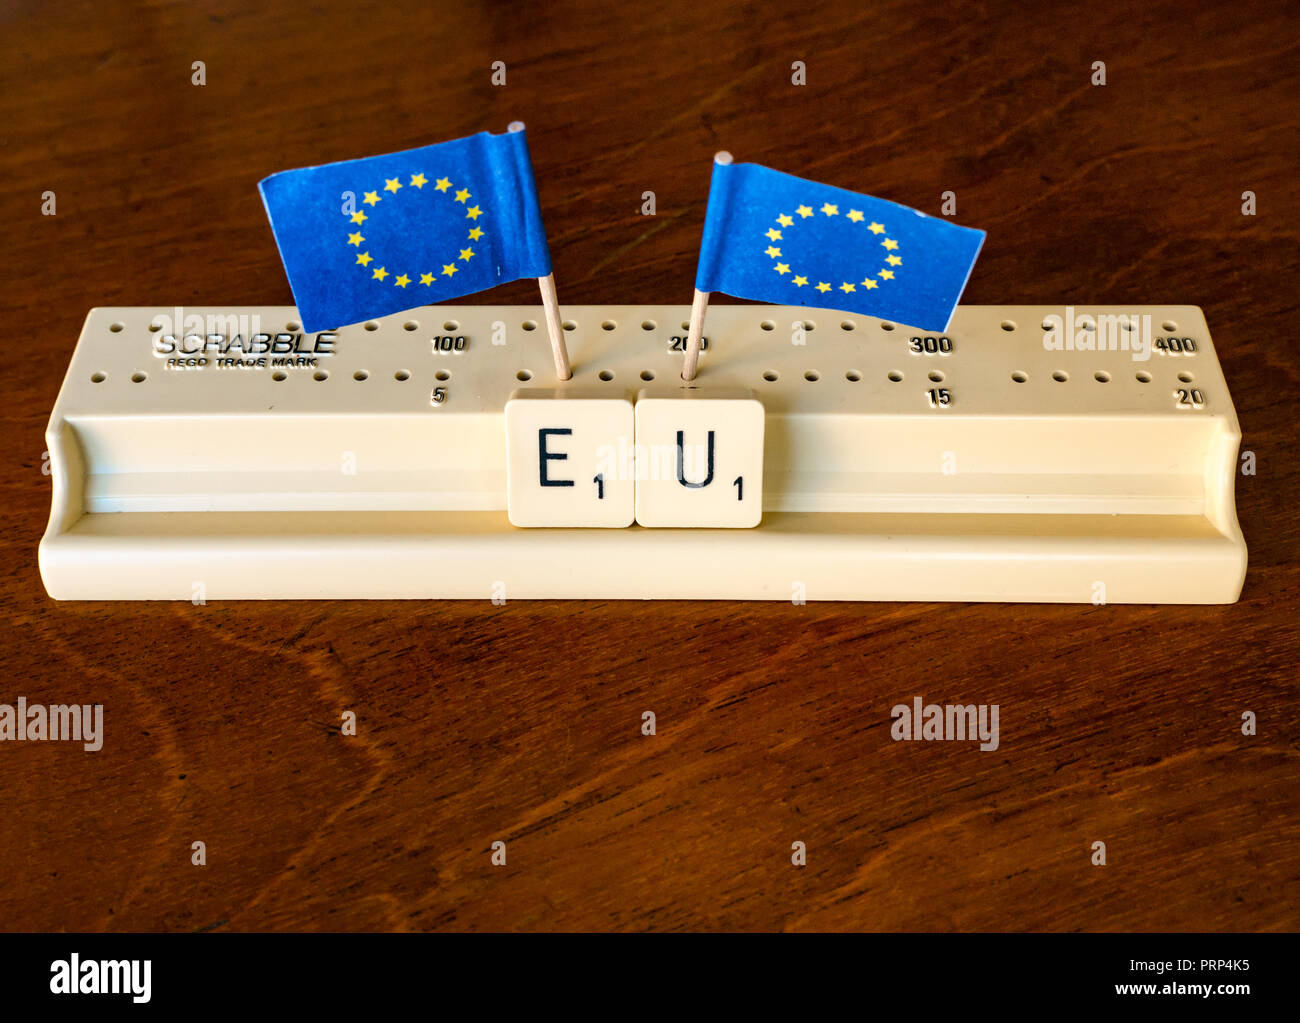 Scrabble letters spelling EU in Scrabble tray with European Union flags on dark mahogany background - Stock Image